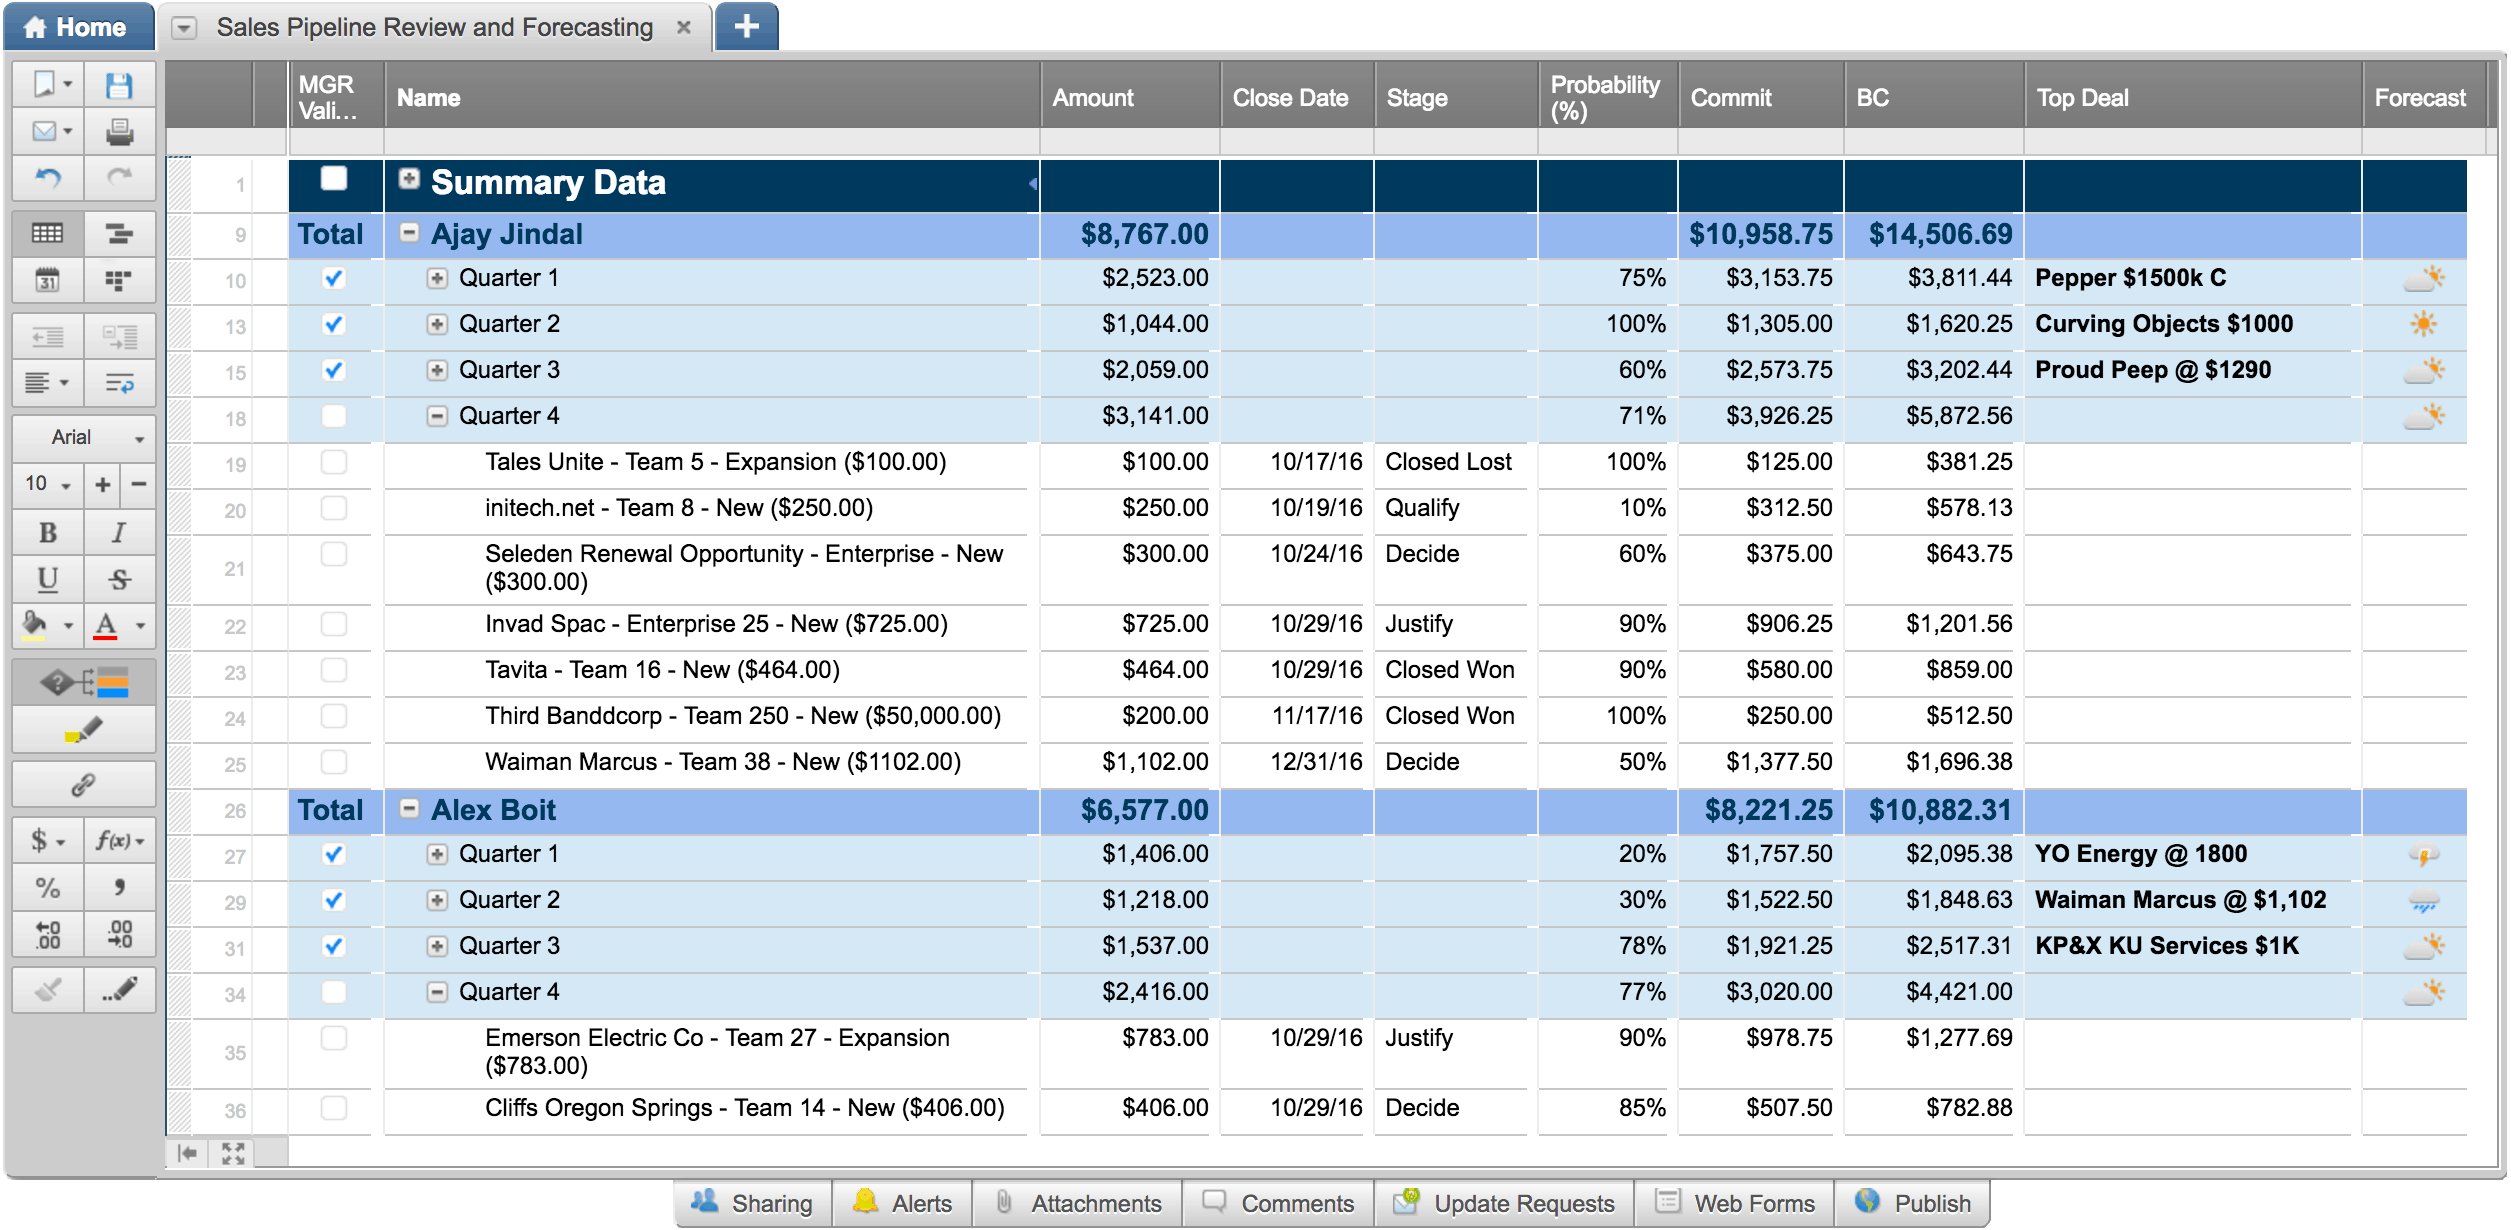 Sales pipeline review and forecast sheet